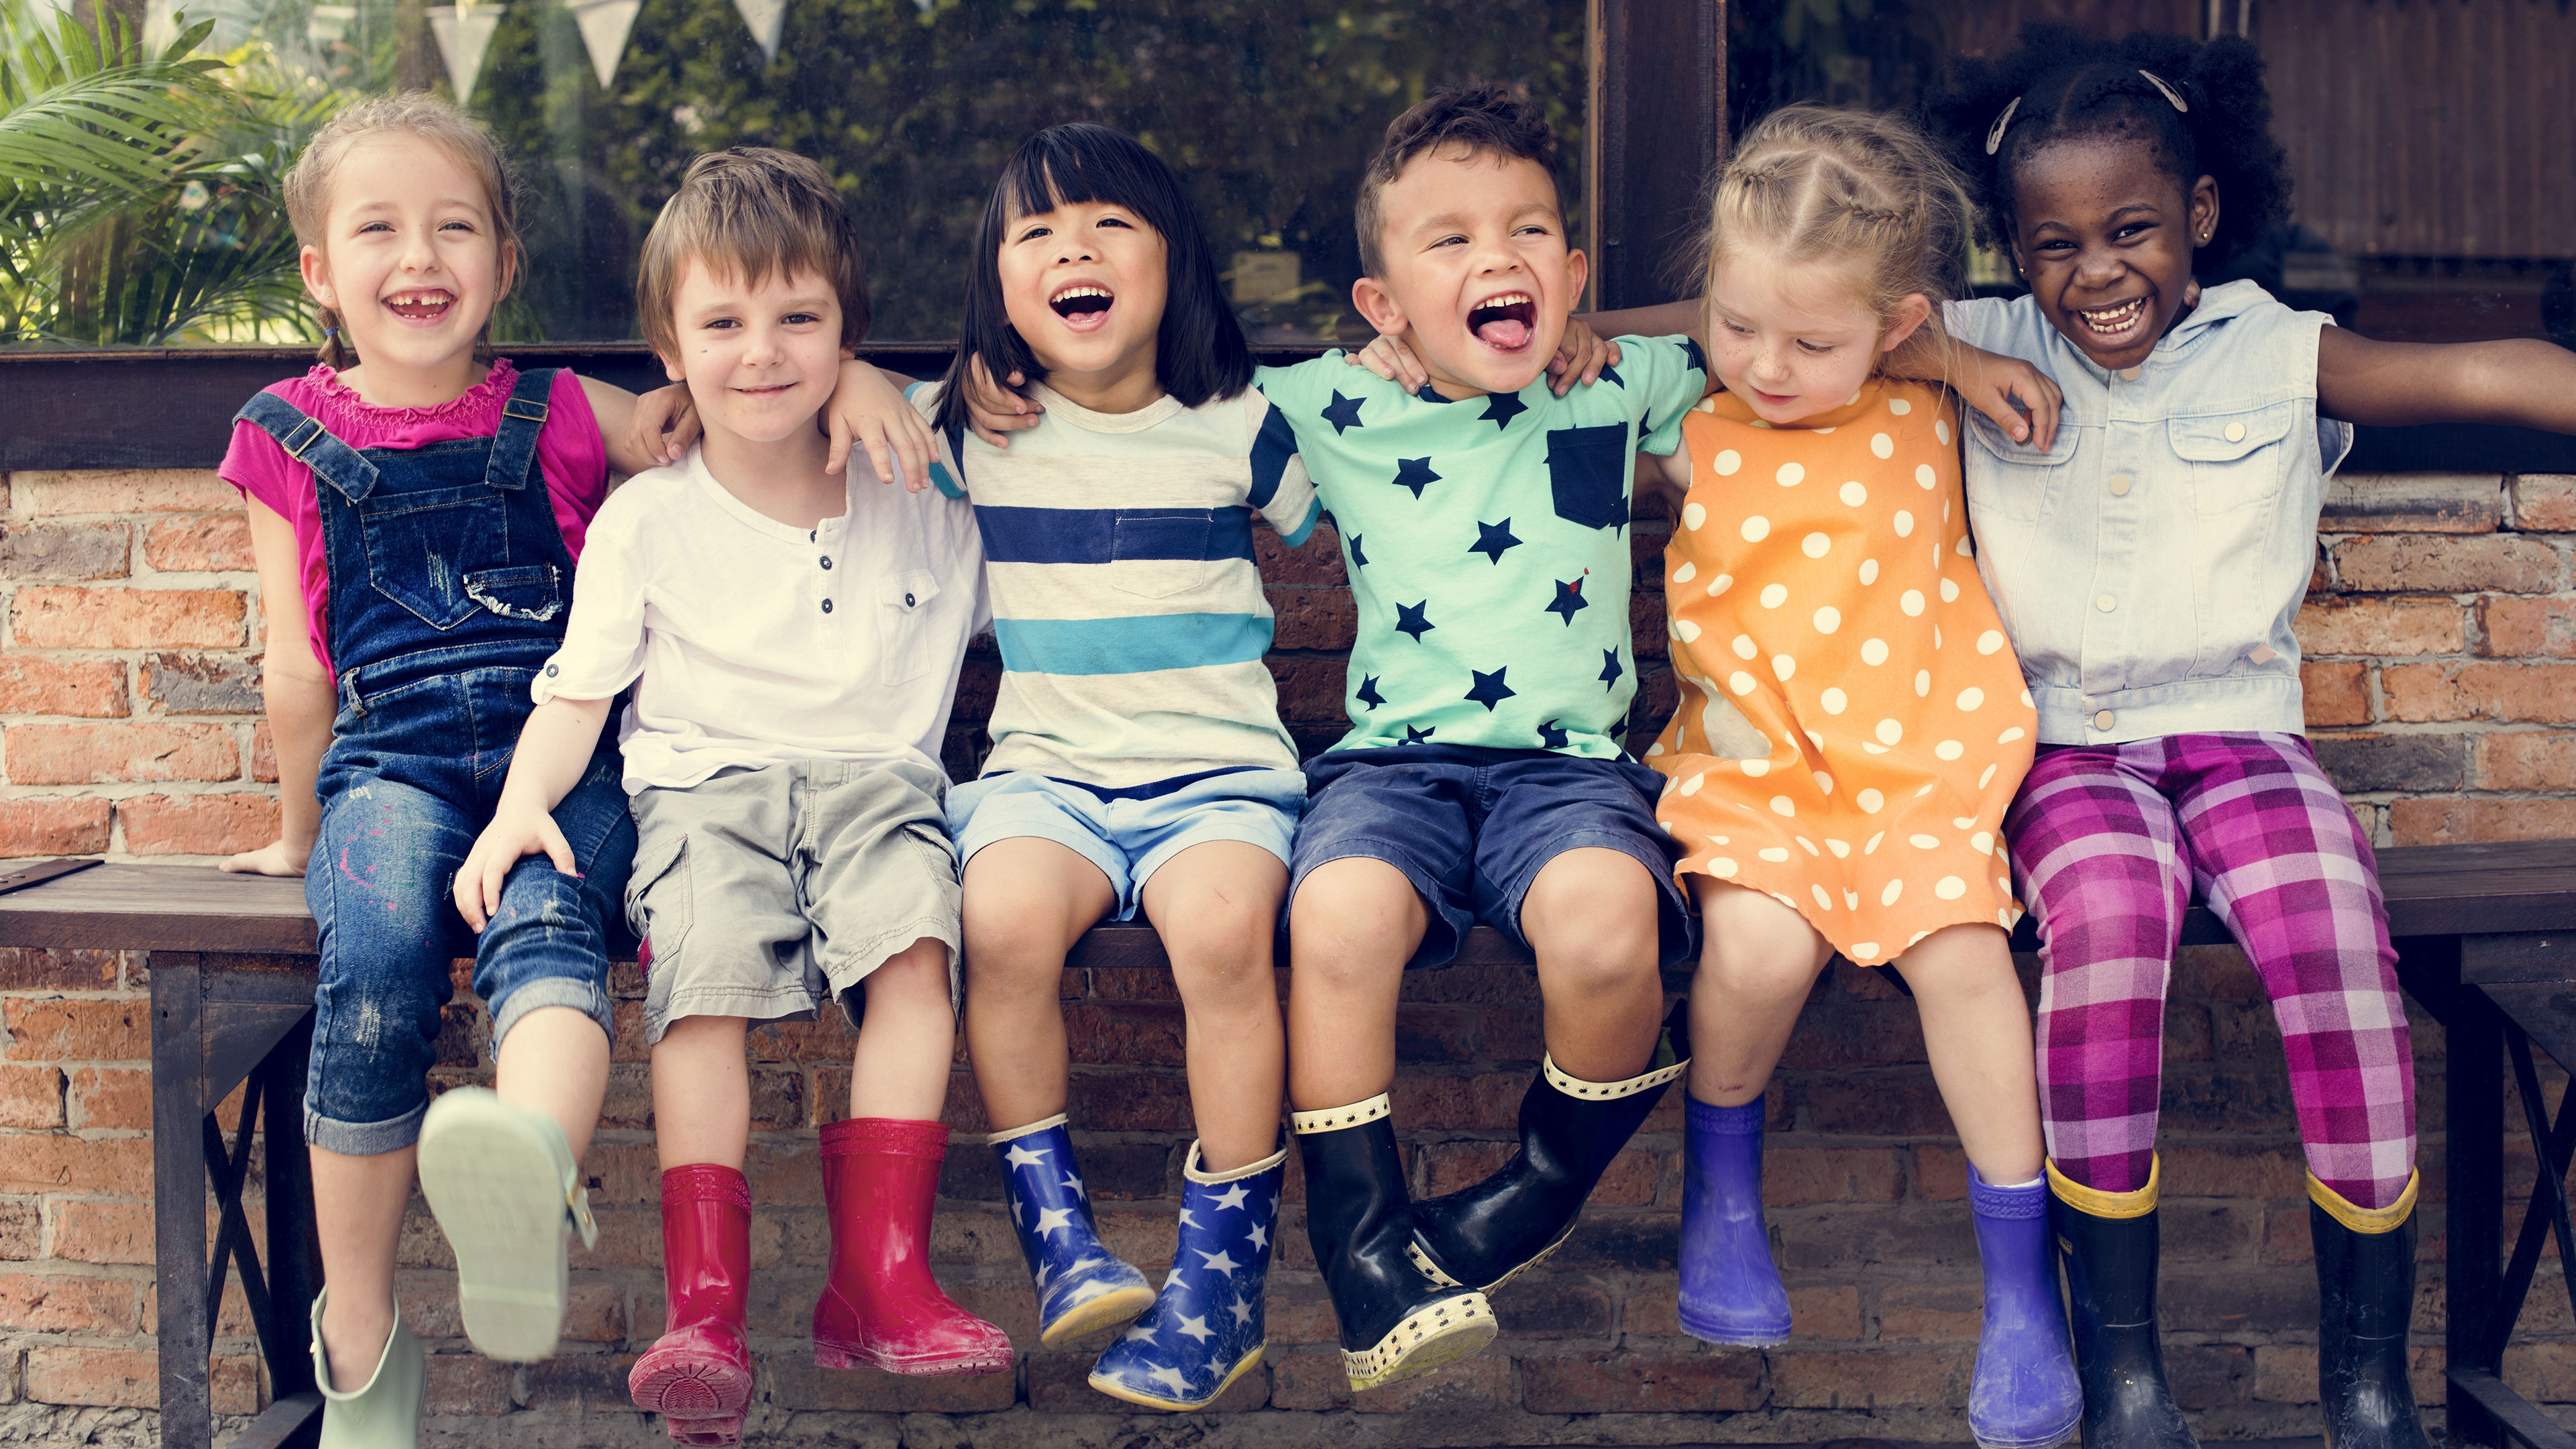 Image of six laughing children with colorful rain boots